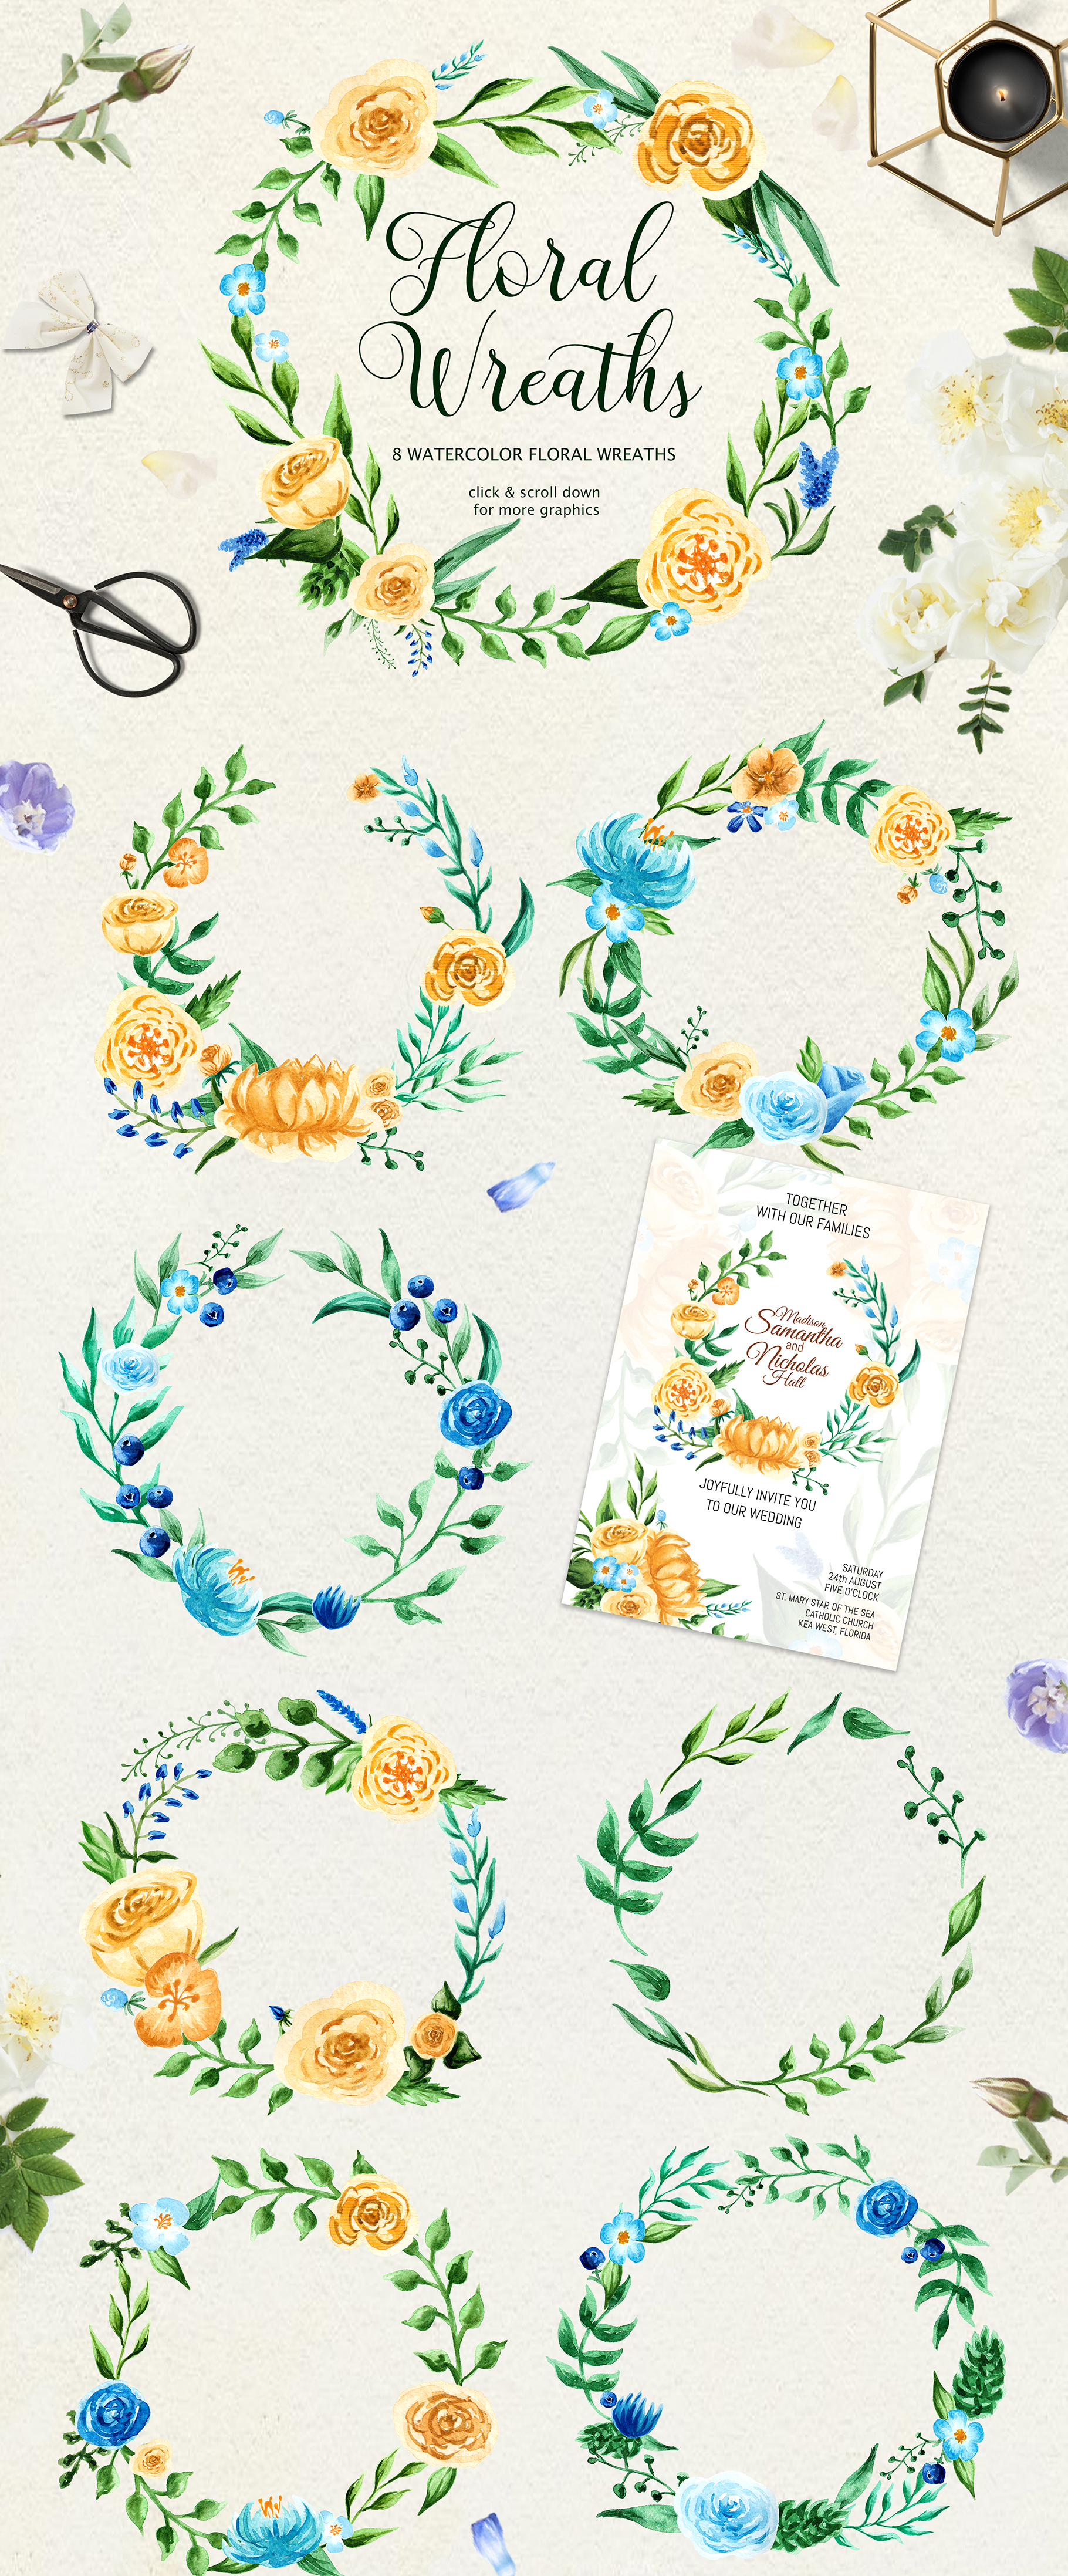 Birth of Watercolor Flower Set Graphic By tregubova.jul Image 4